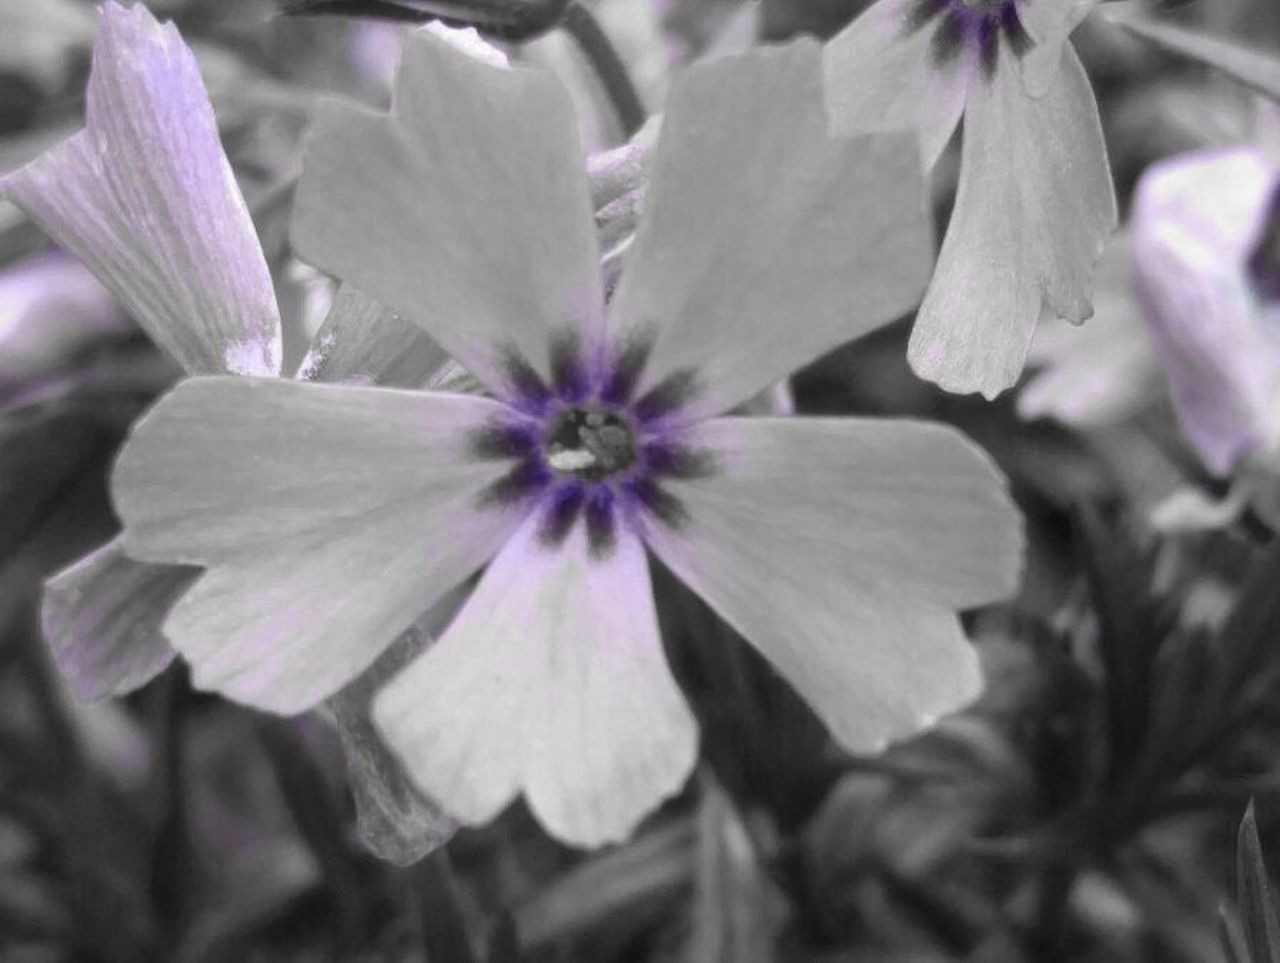 flower, petal, fragility, beauty in nature, nature, purple, no people, plant, freshness, growth, flower head, day, close-up, outdoors, blooming